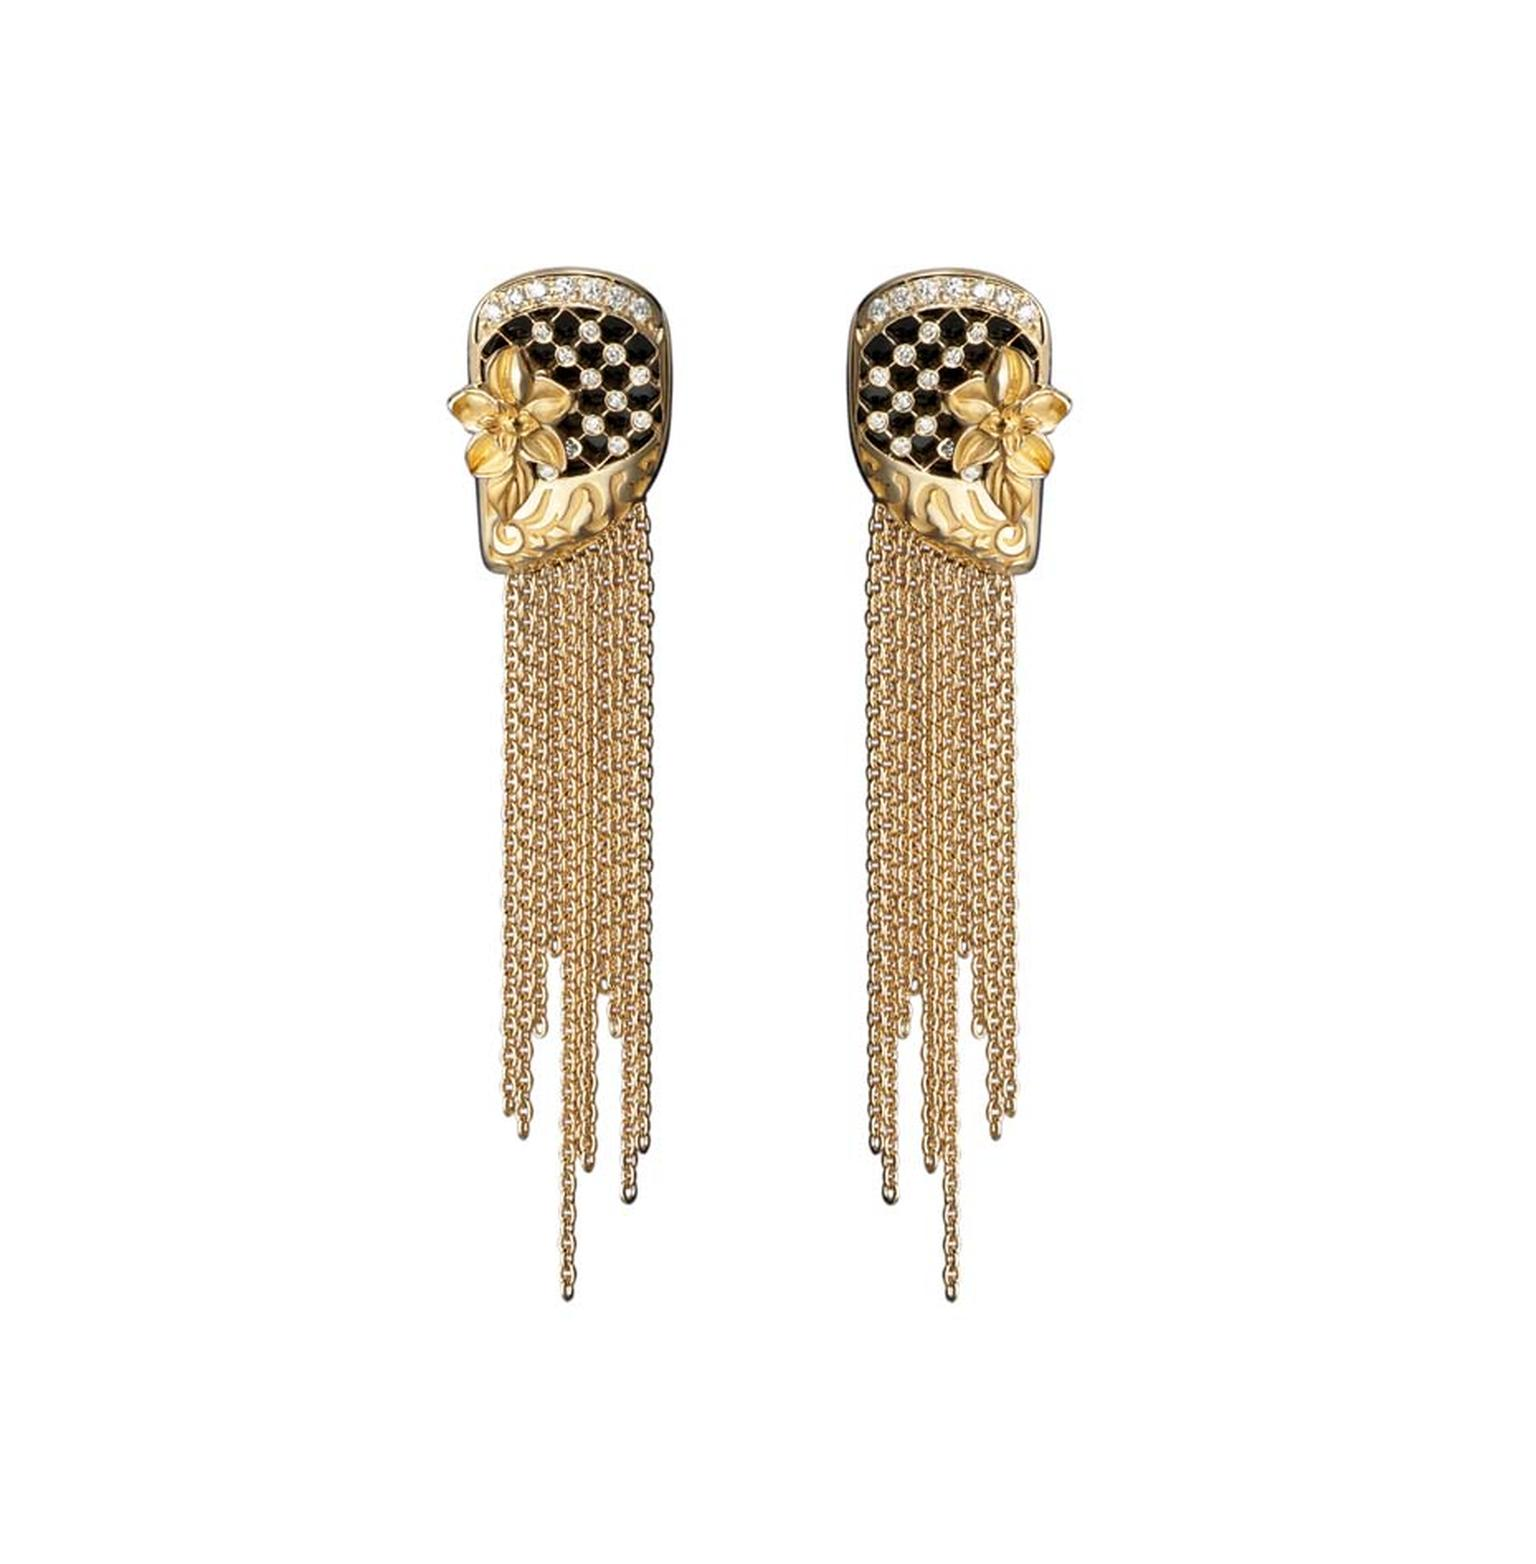 Carrera y Carrera Sierpes medium earrings in yellow gold with diamonds.